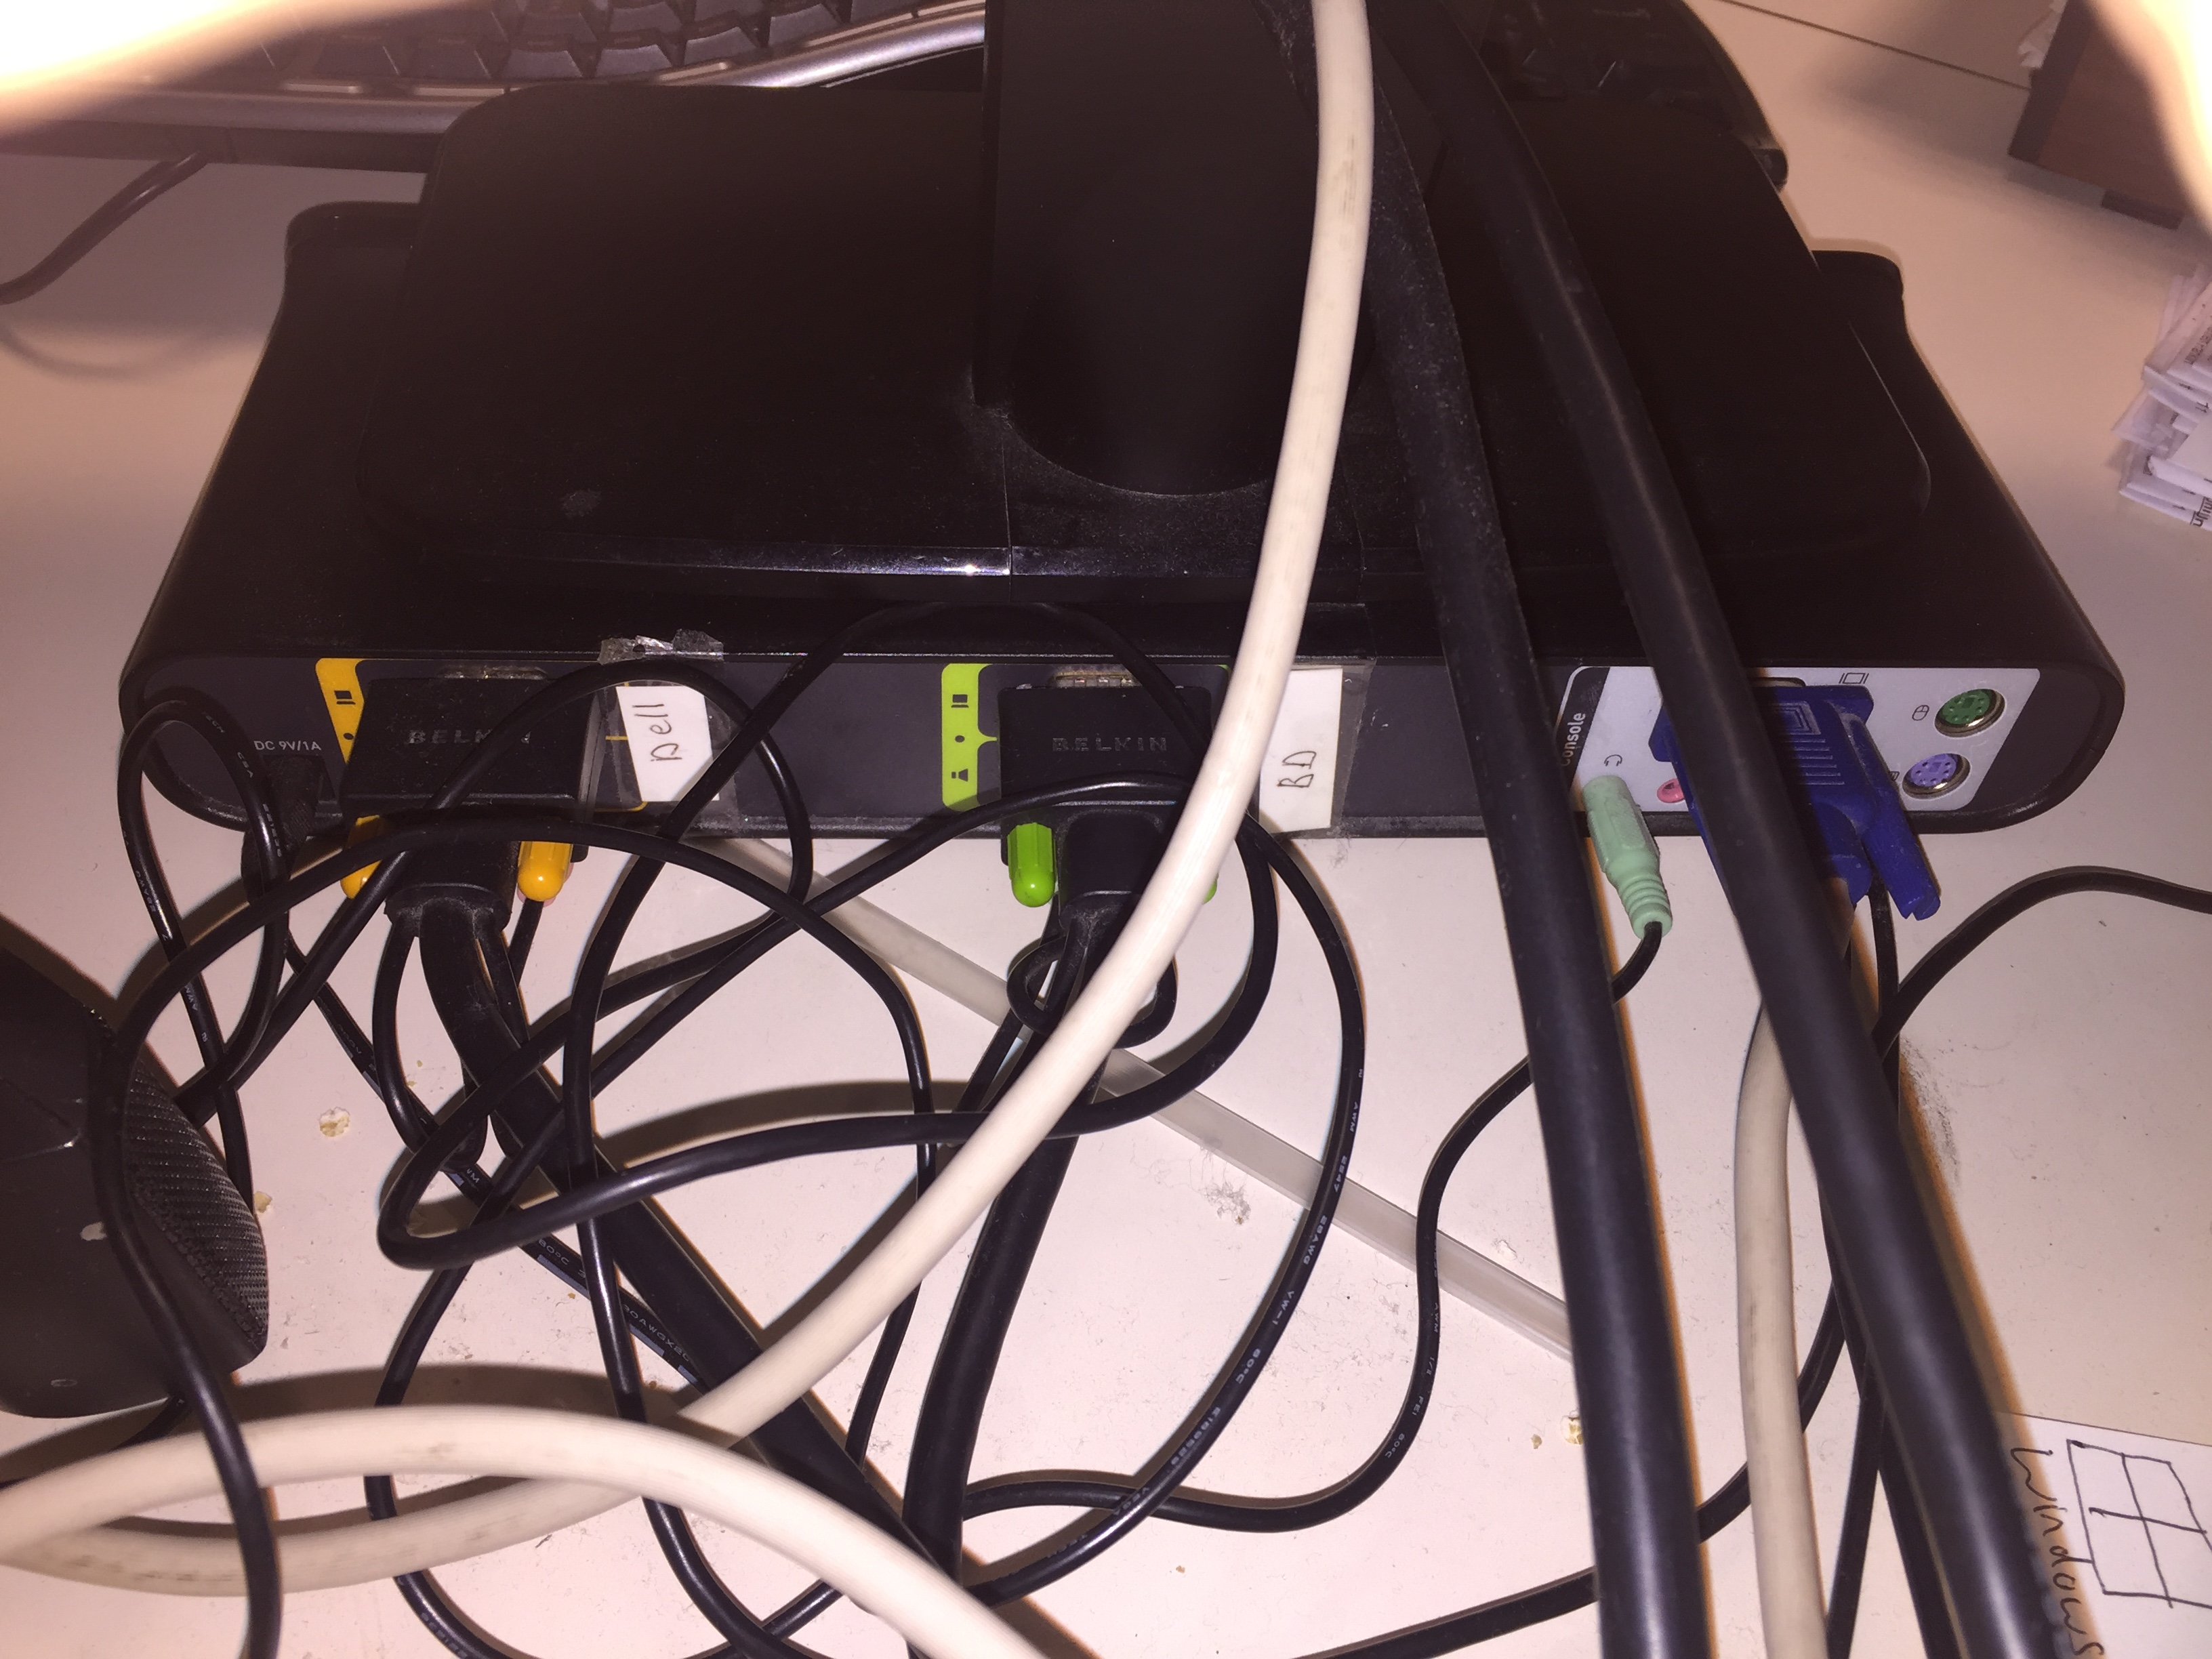 back of the kvm switch